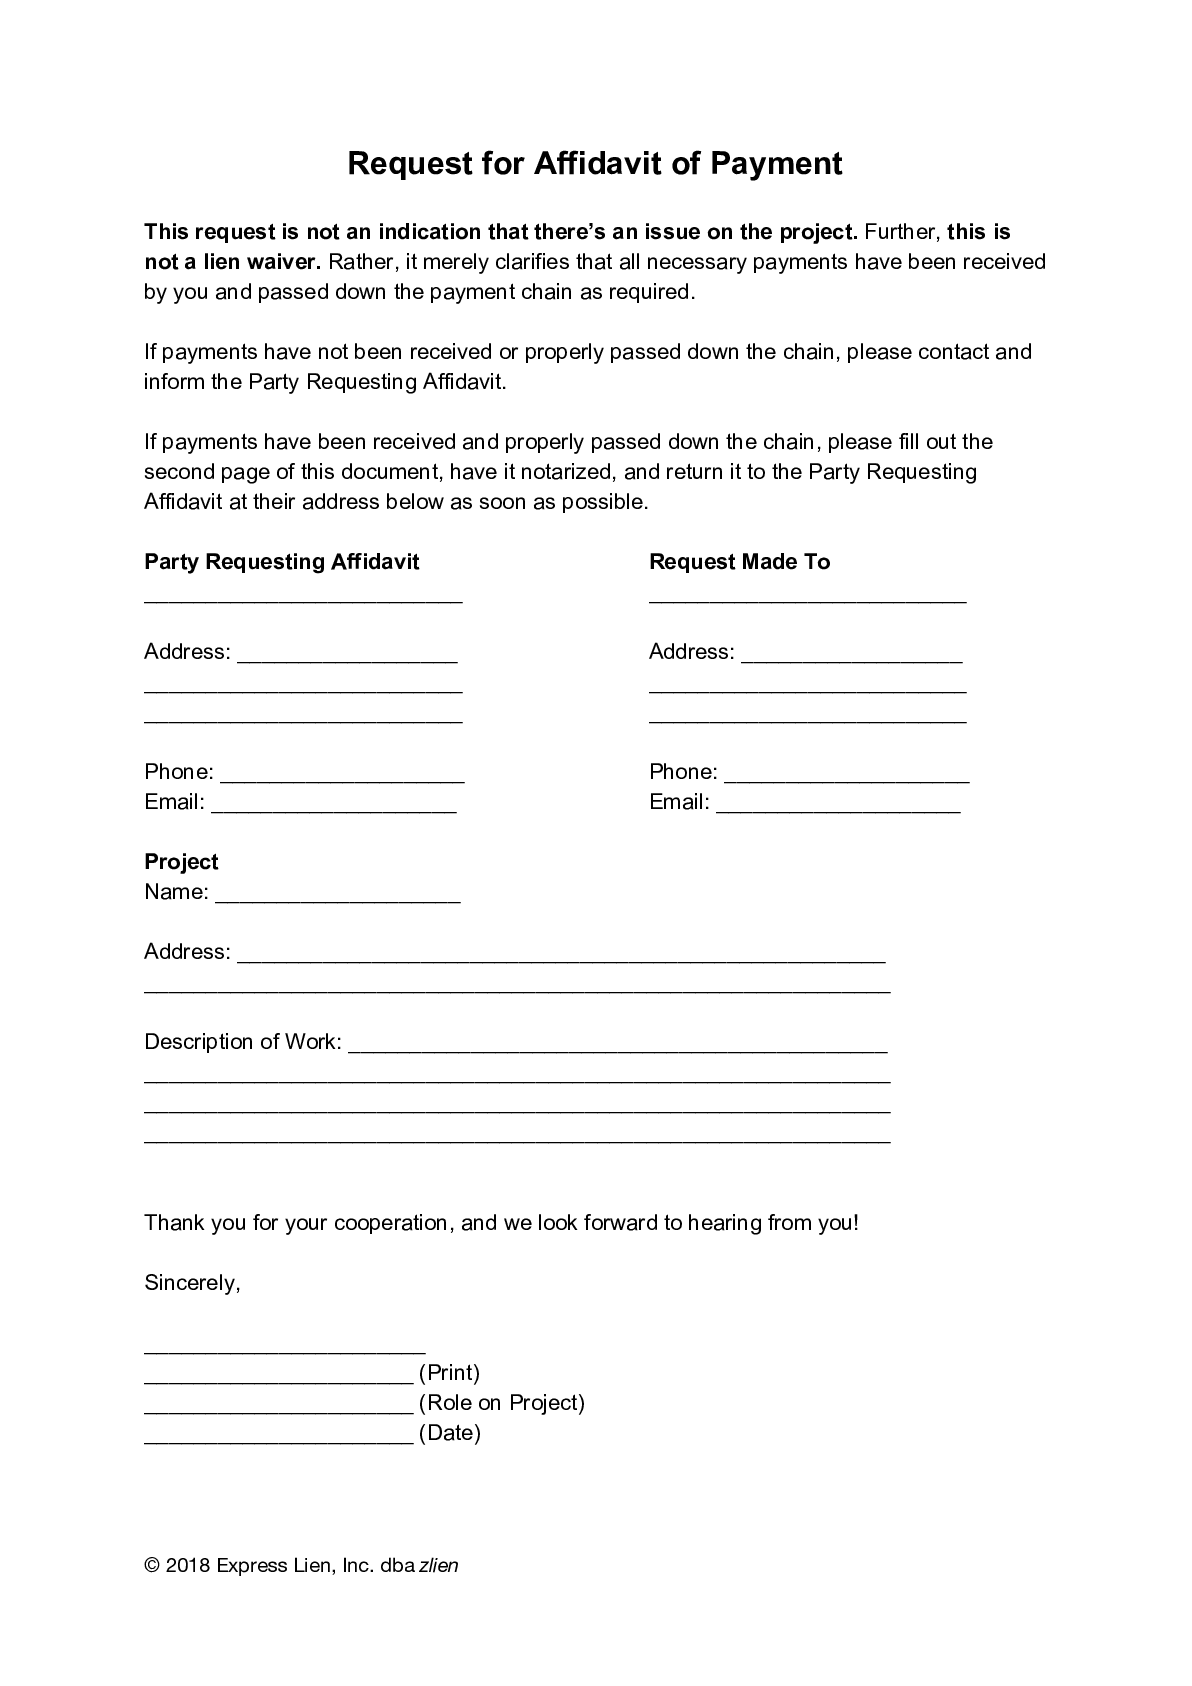 Request for Affidavit of Payment (General) Form